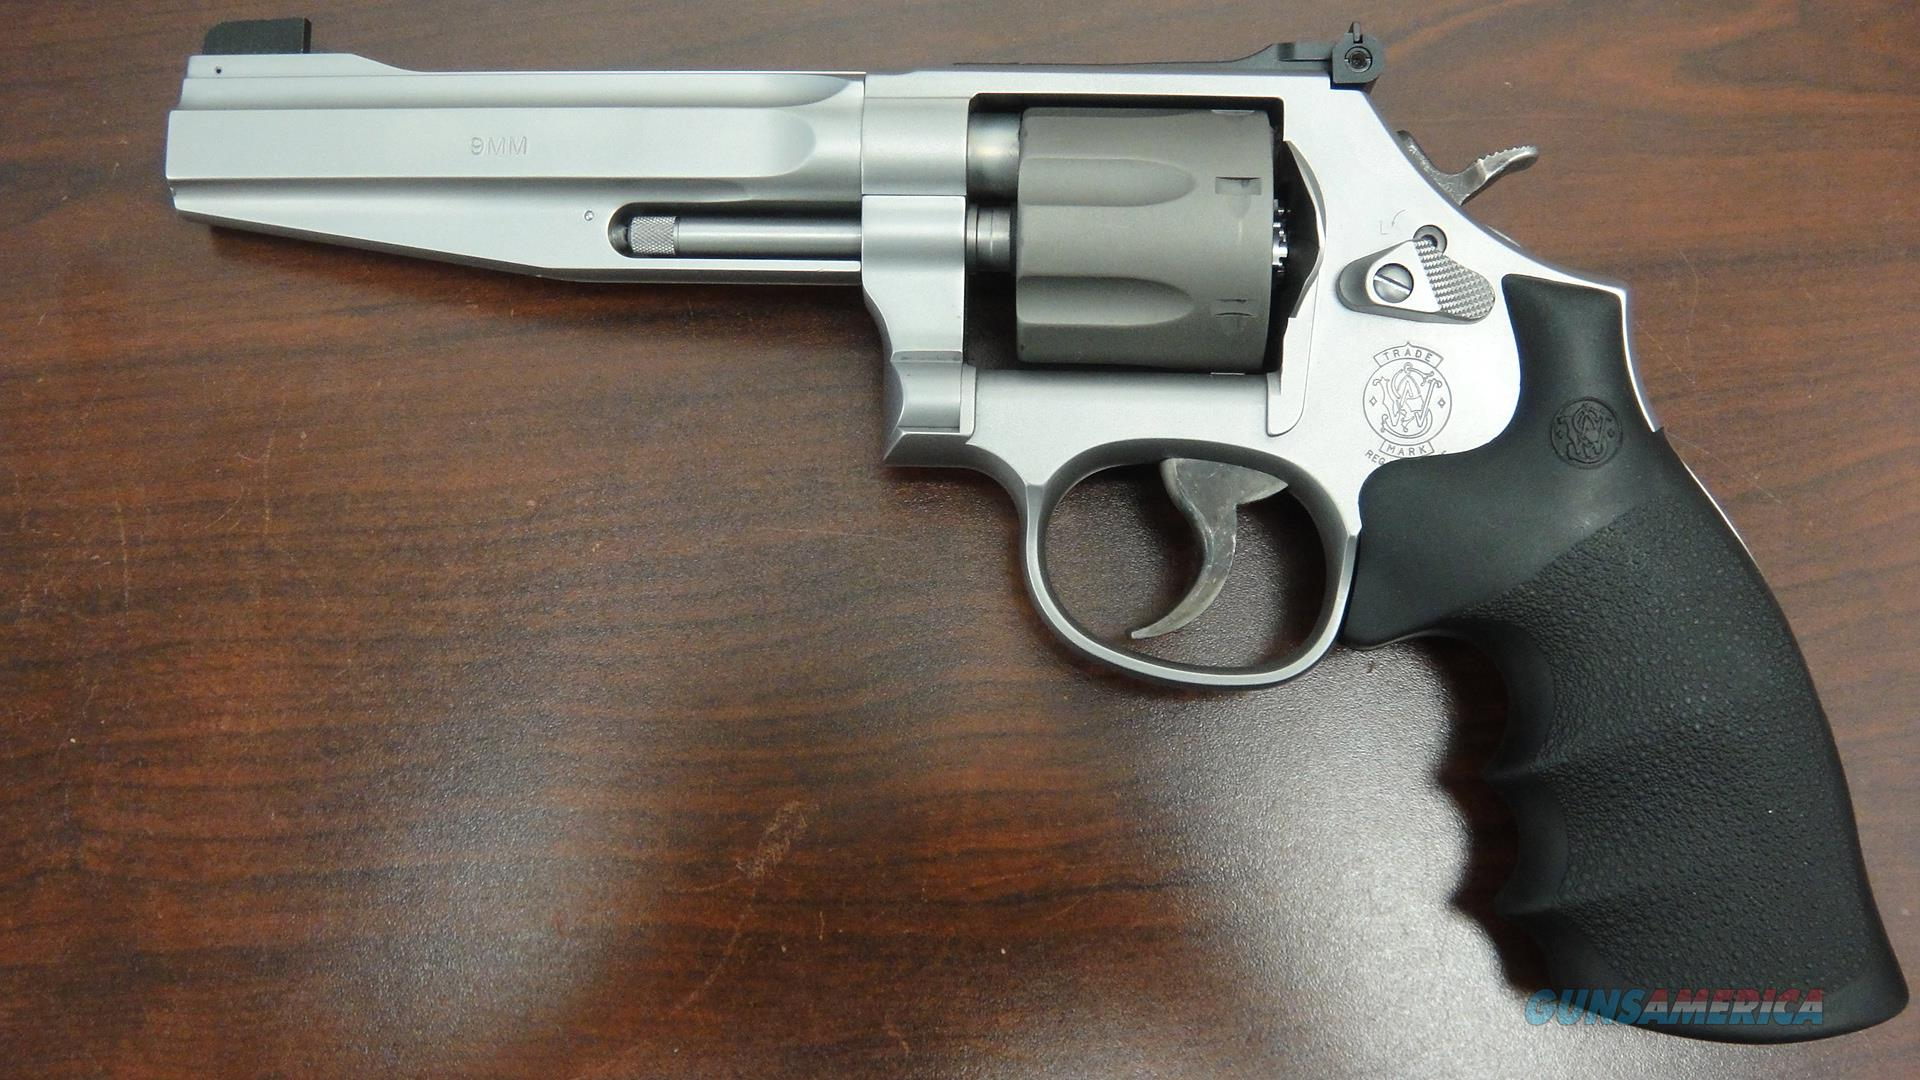 Smith and Wesson 986 Performance Center  Guns > Pistols > Smith & Wesson Revolvers > Performance Center